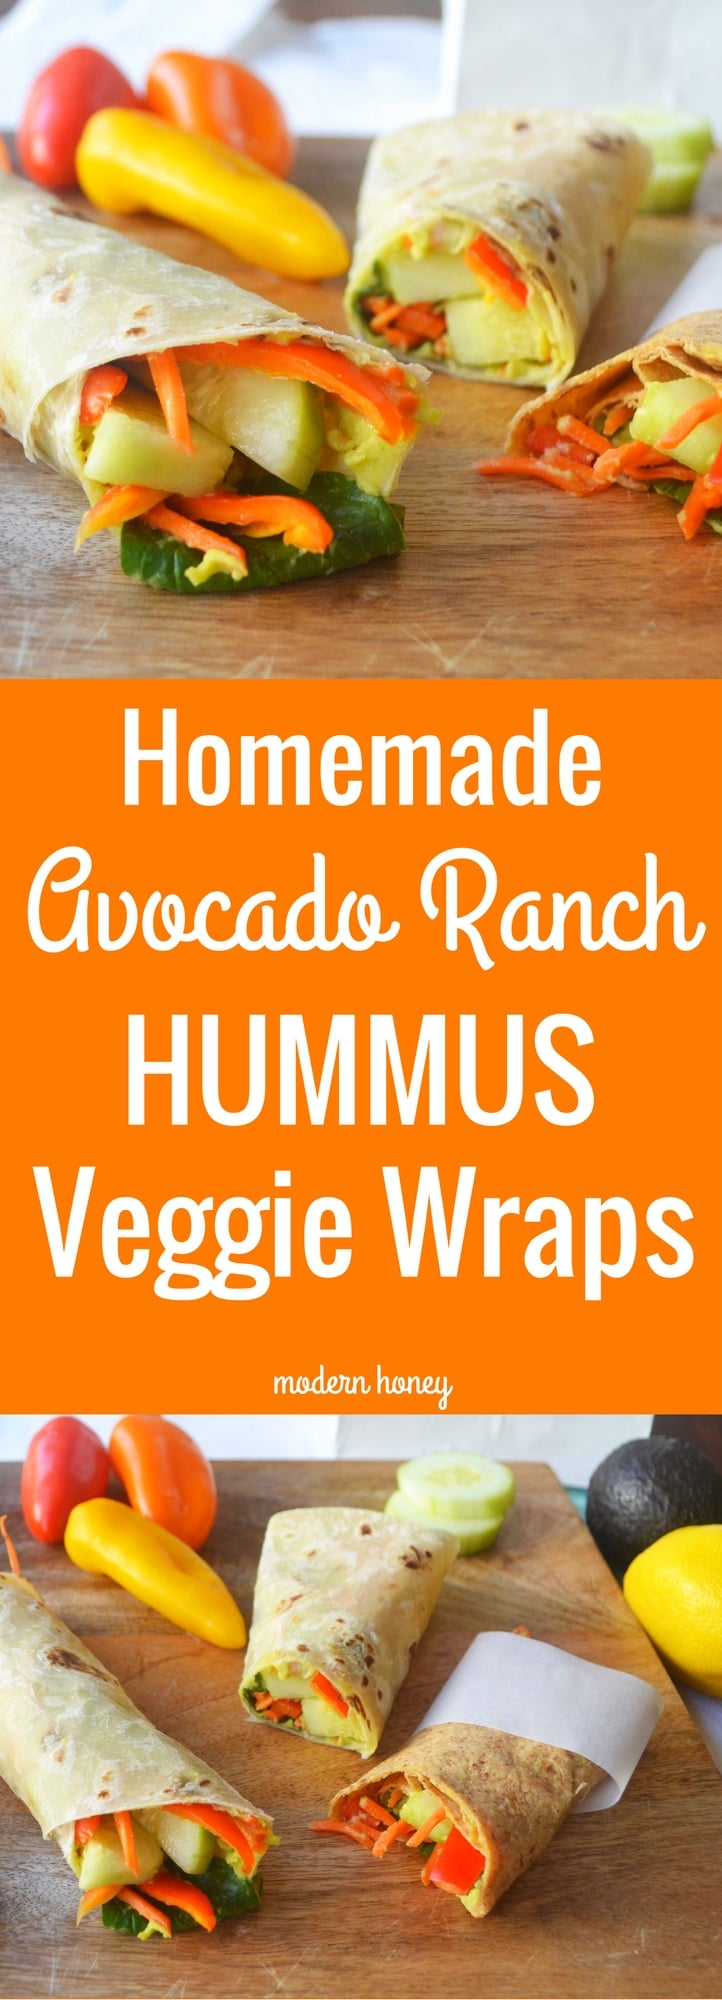 Homemade Avocado Ranch Hummus Veggie Wraps. A healthy school lunch that kids will actually eat! Homemade hummus is made with chickpeas, ranch dressing powder, lemon juice, avocado, and spices. It is spread on a healthy tortilla and rolled up with thinly sliced peppers, cucumbers, spinach, and shredded carrots. www.modernhoney.com